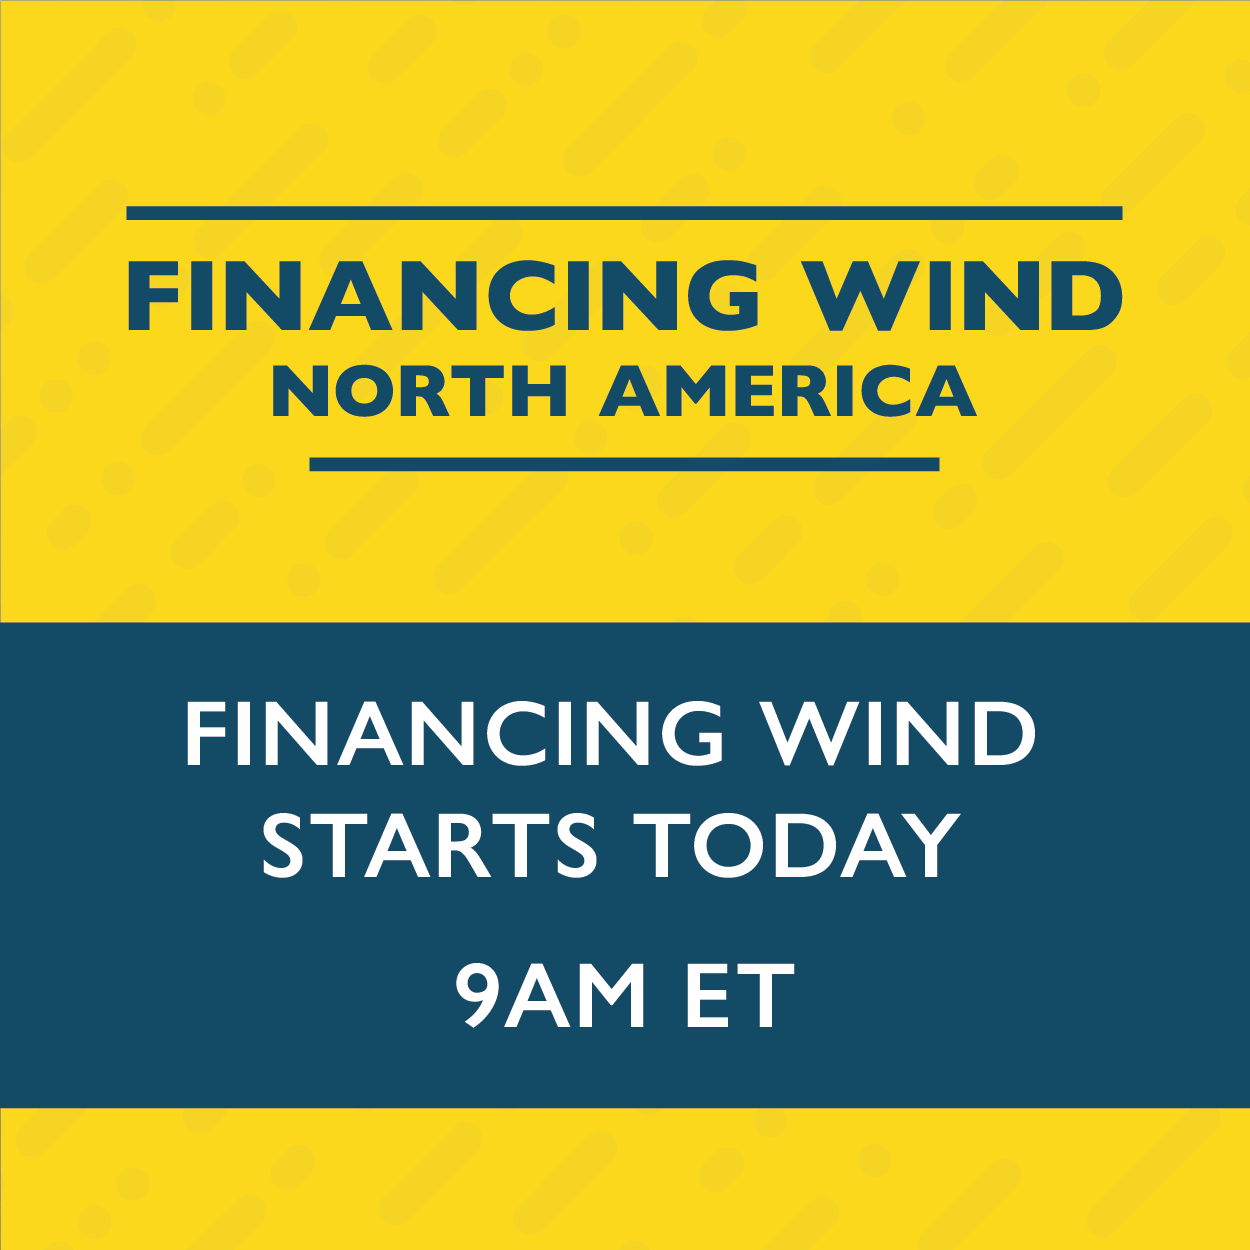 Join us today for Financing Wind North America!